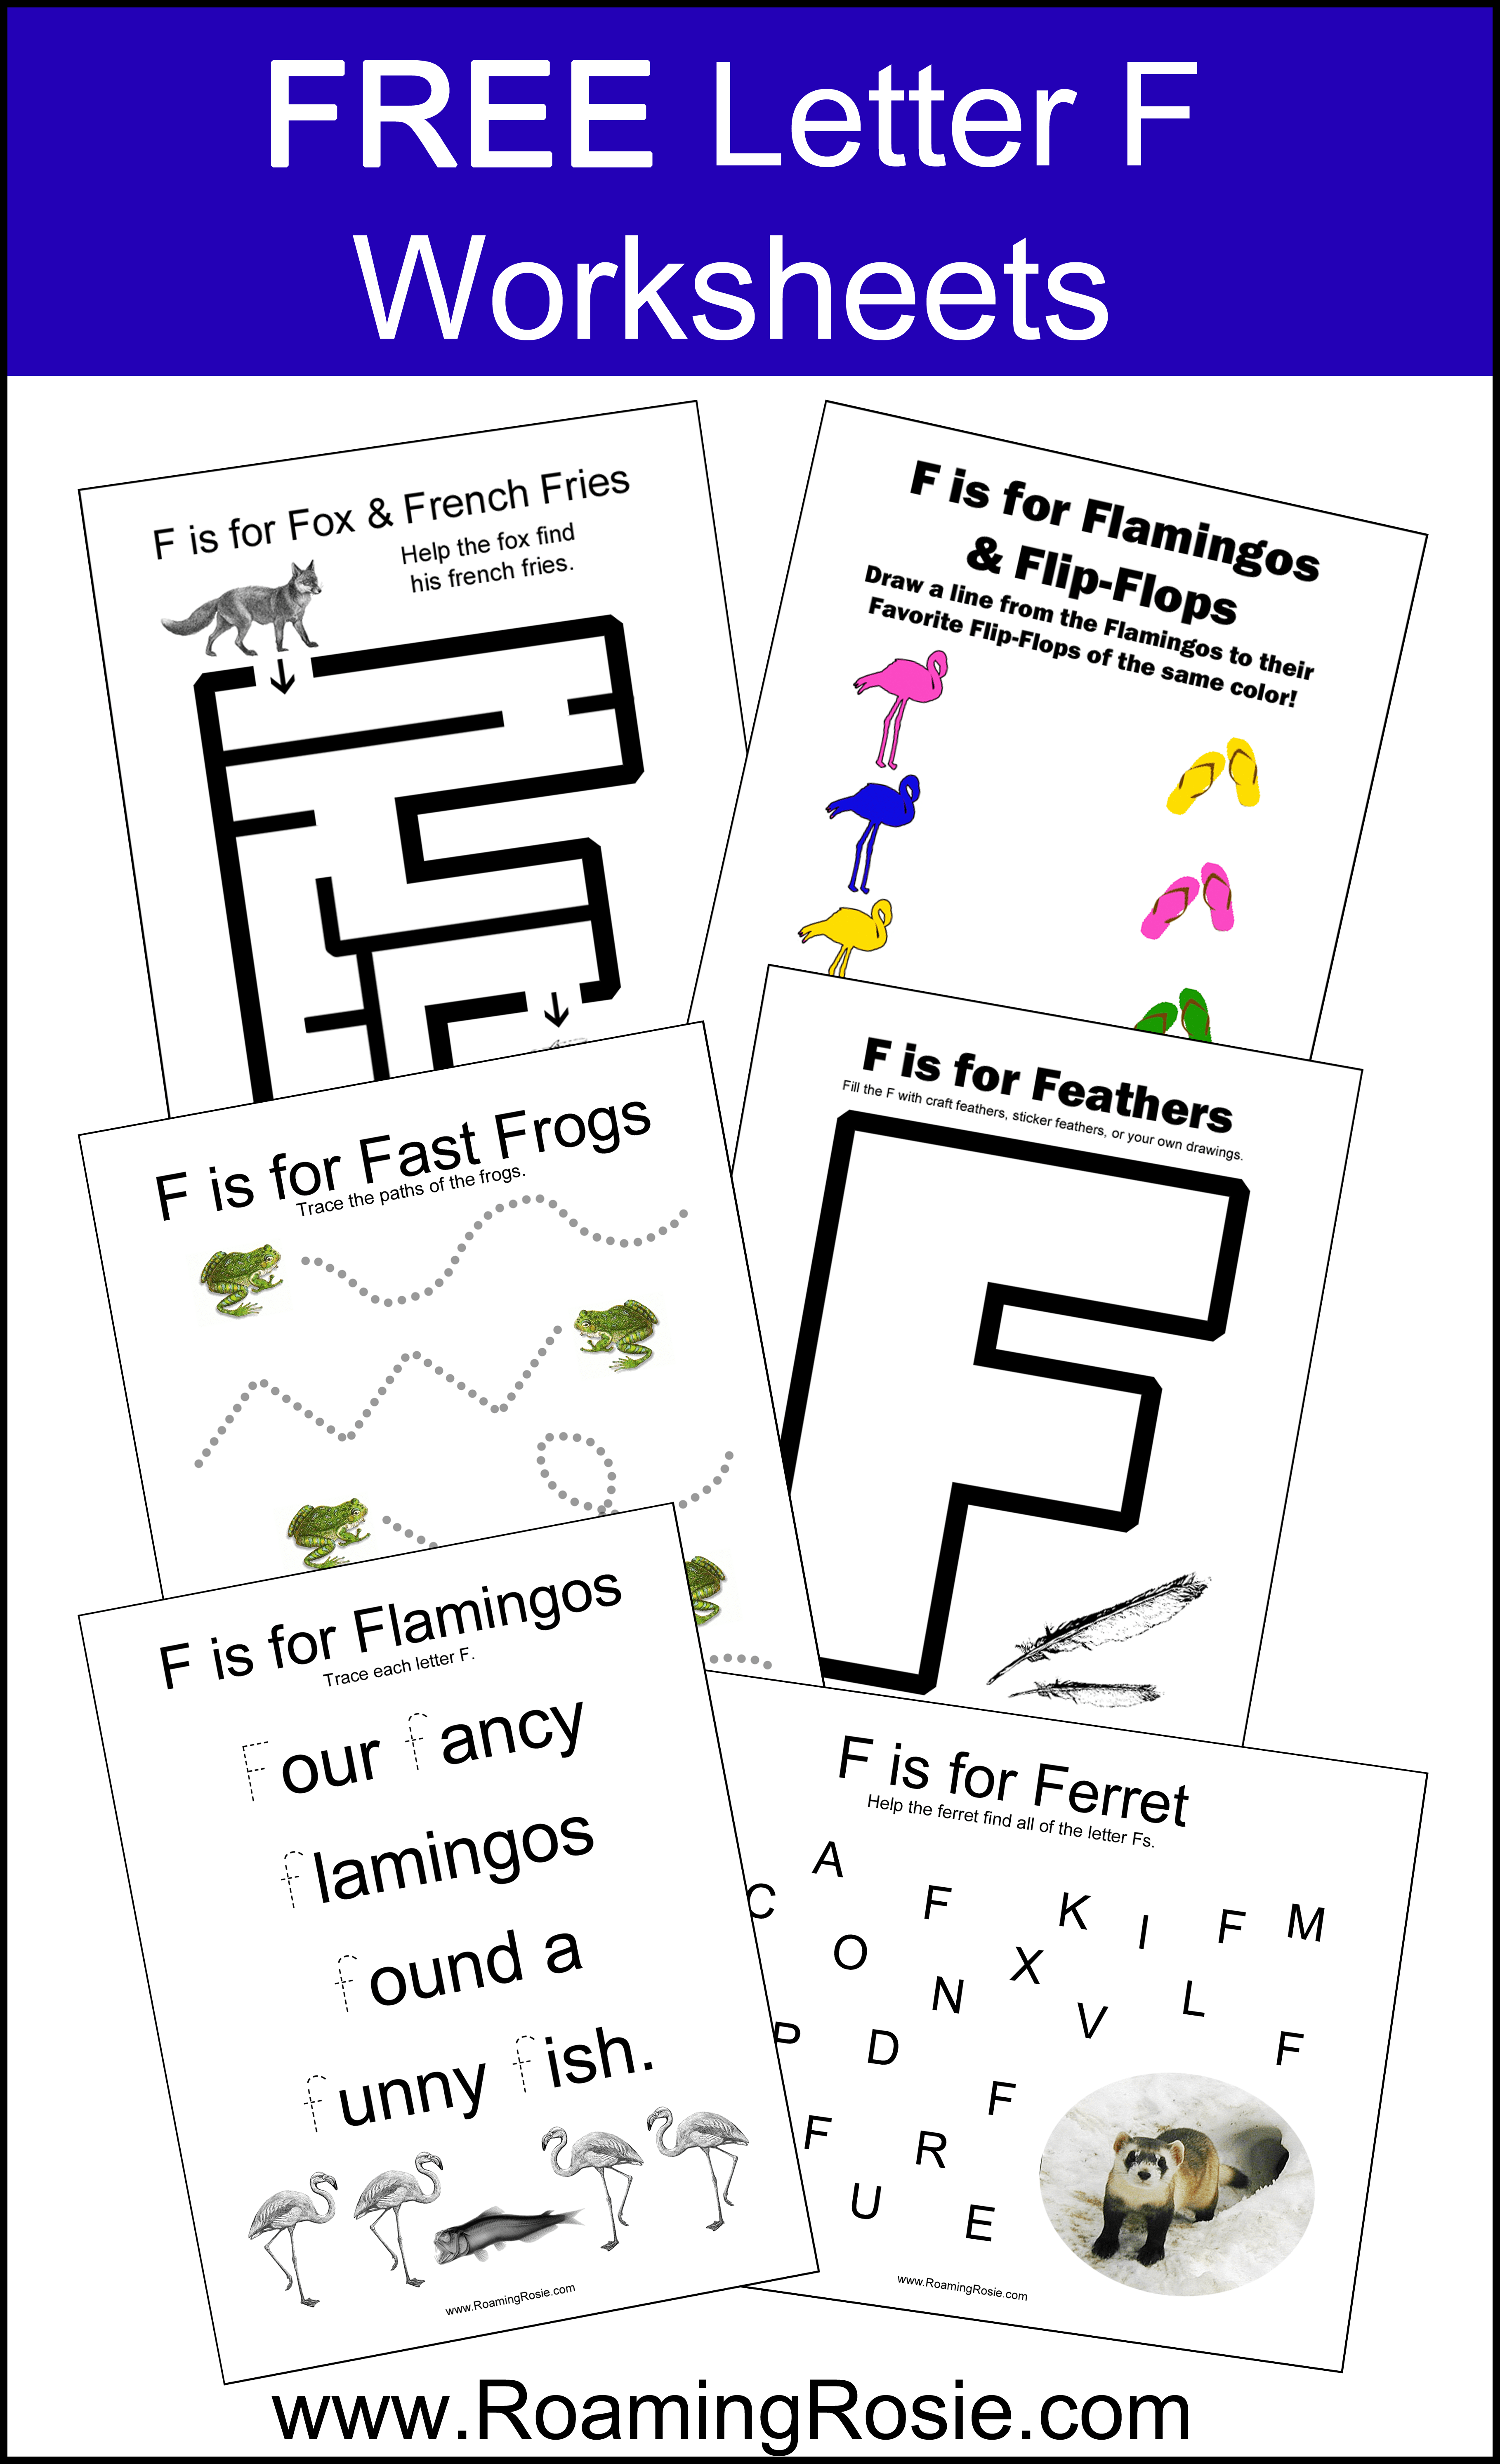 Letter F Free Alphabet Worksheets For Kids